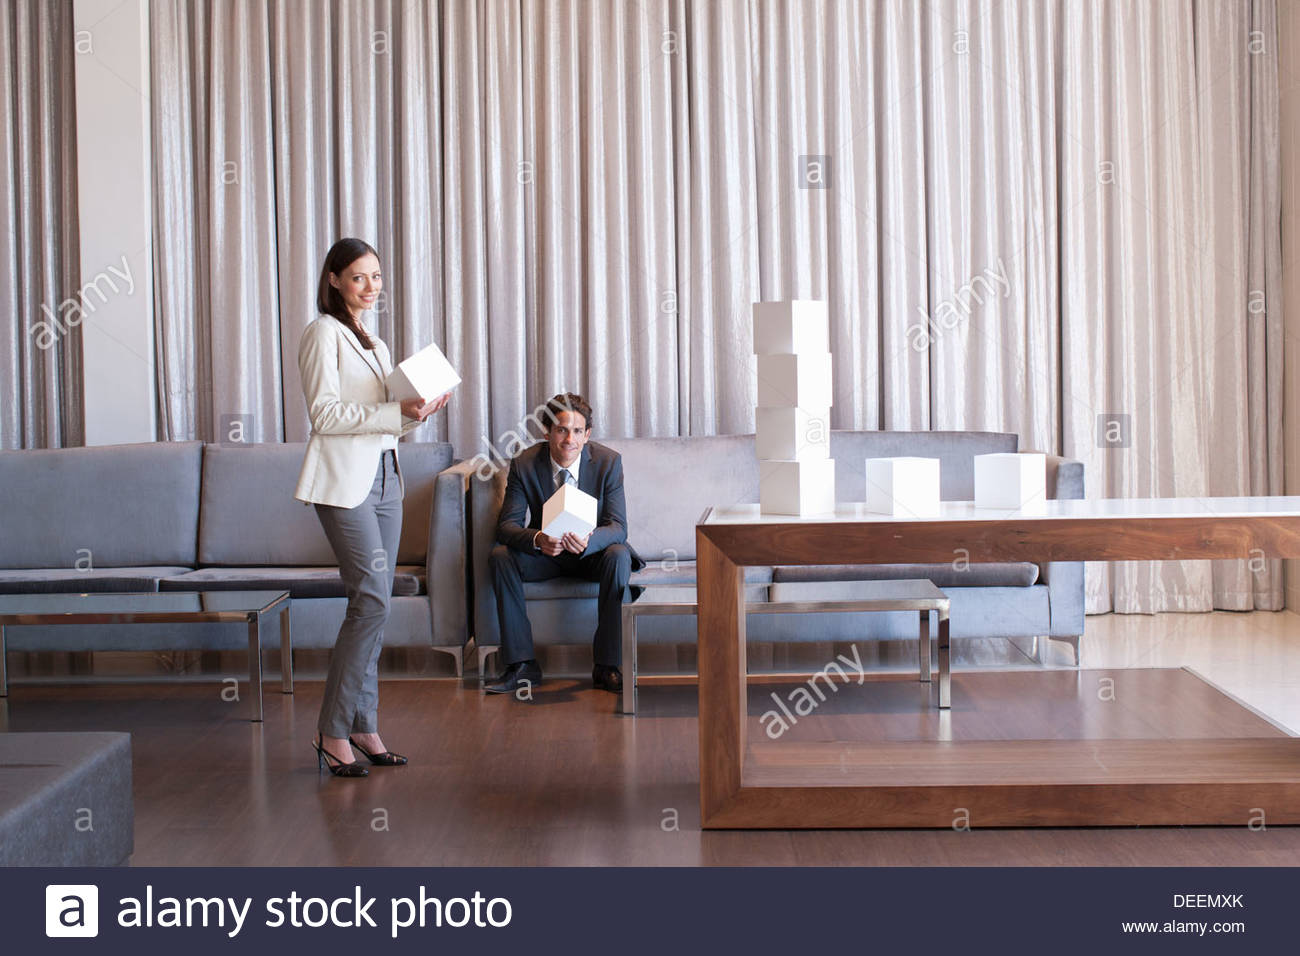 Business people stacking cubes in  hotel lobby - Stock Image